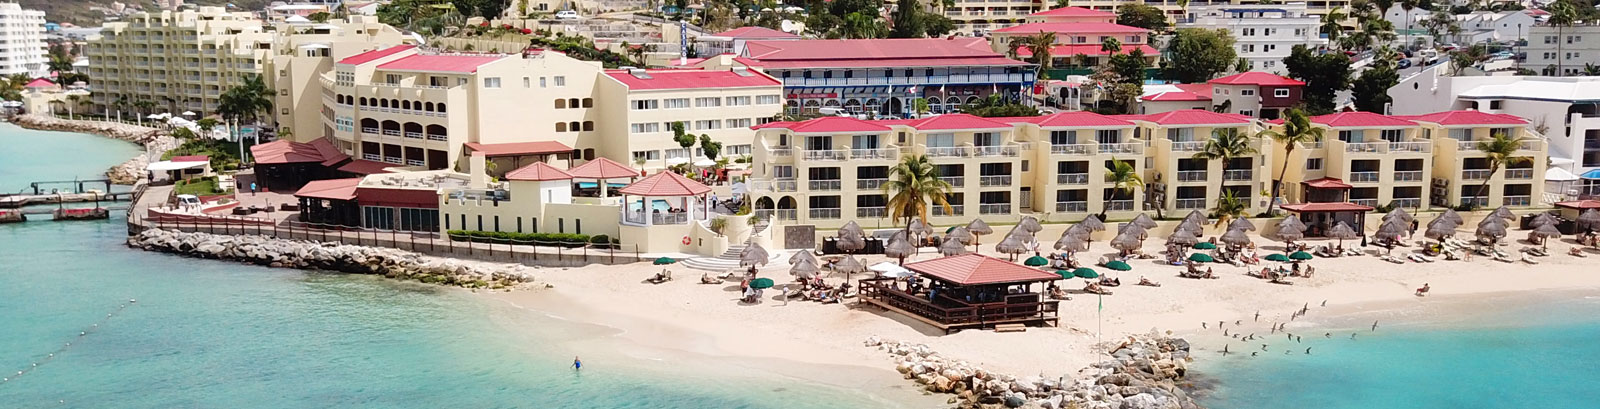 Webcams, Simpson Bay Resort & Marina à Saint-Martin